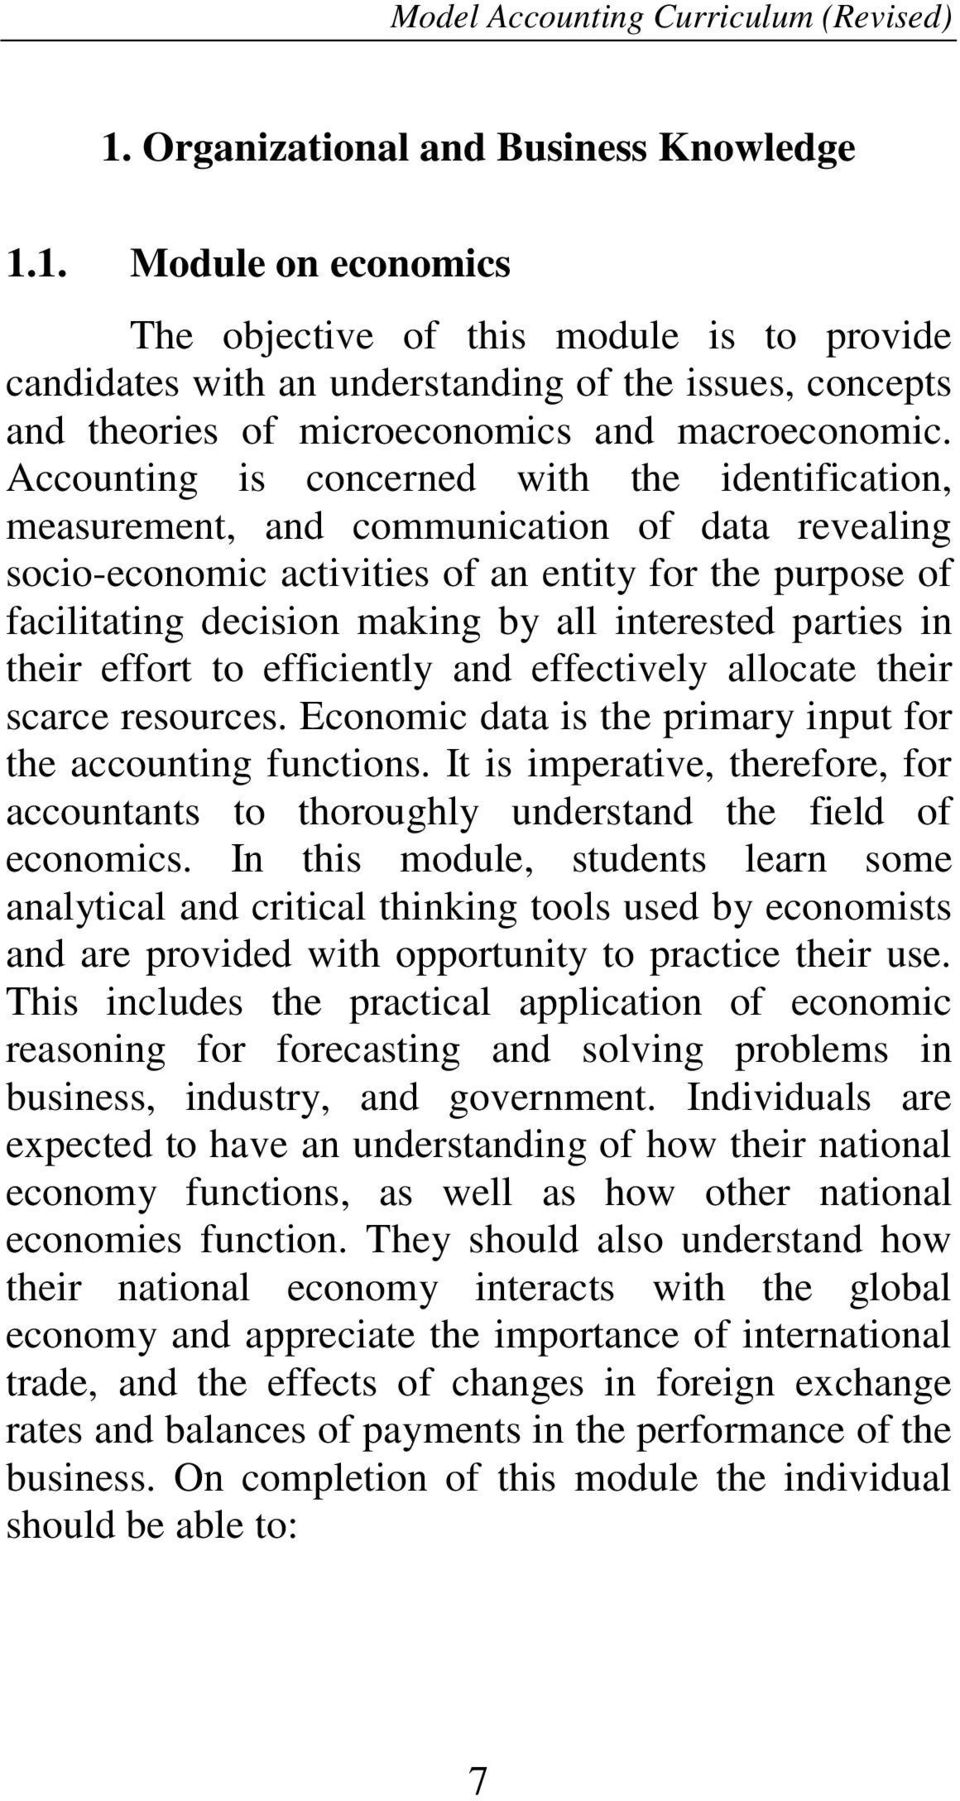 1. Module on economics The objective of this module is to provide candidates with an understanding of the issues, concepts and theories of microeconomics and macroeconomic.